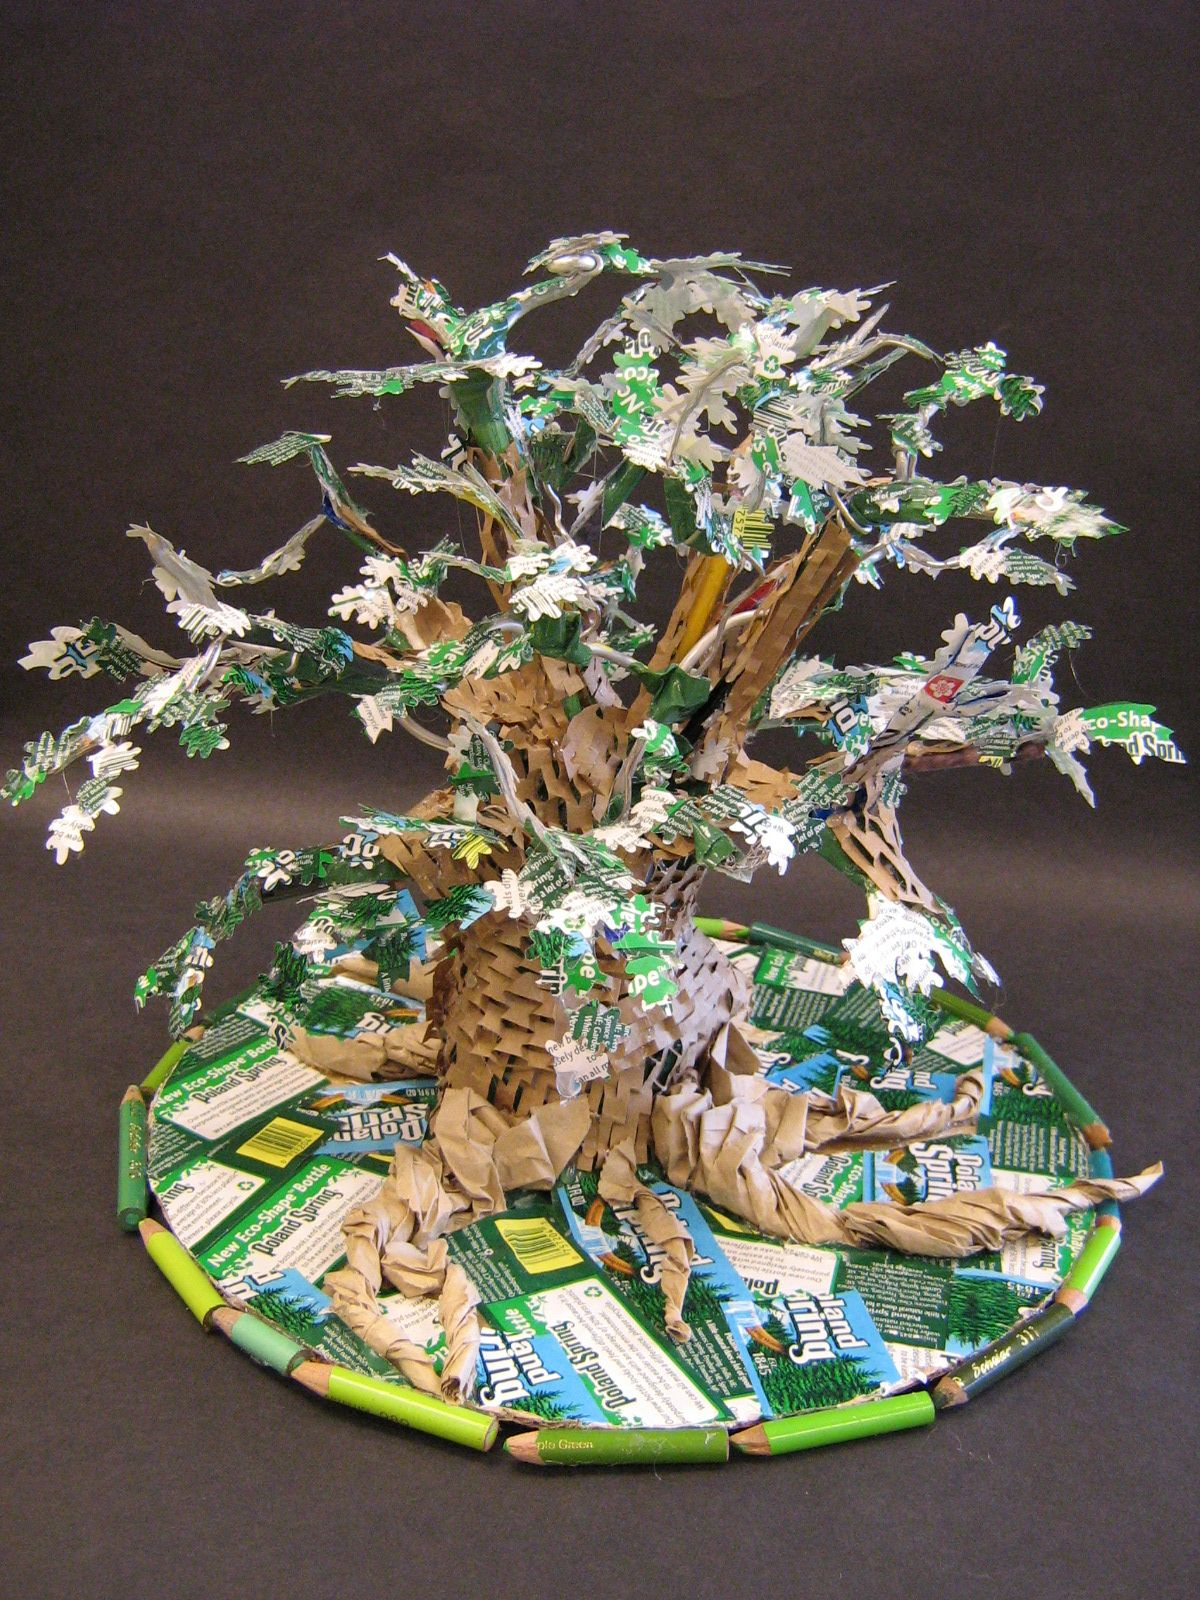 Crafts for highschool students - Recycled Art Projects For Hippies Google Search